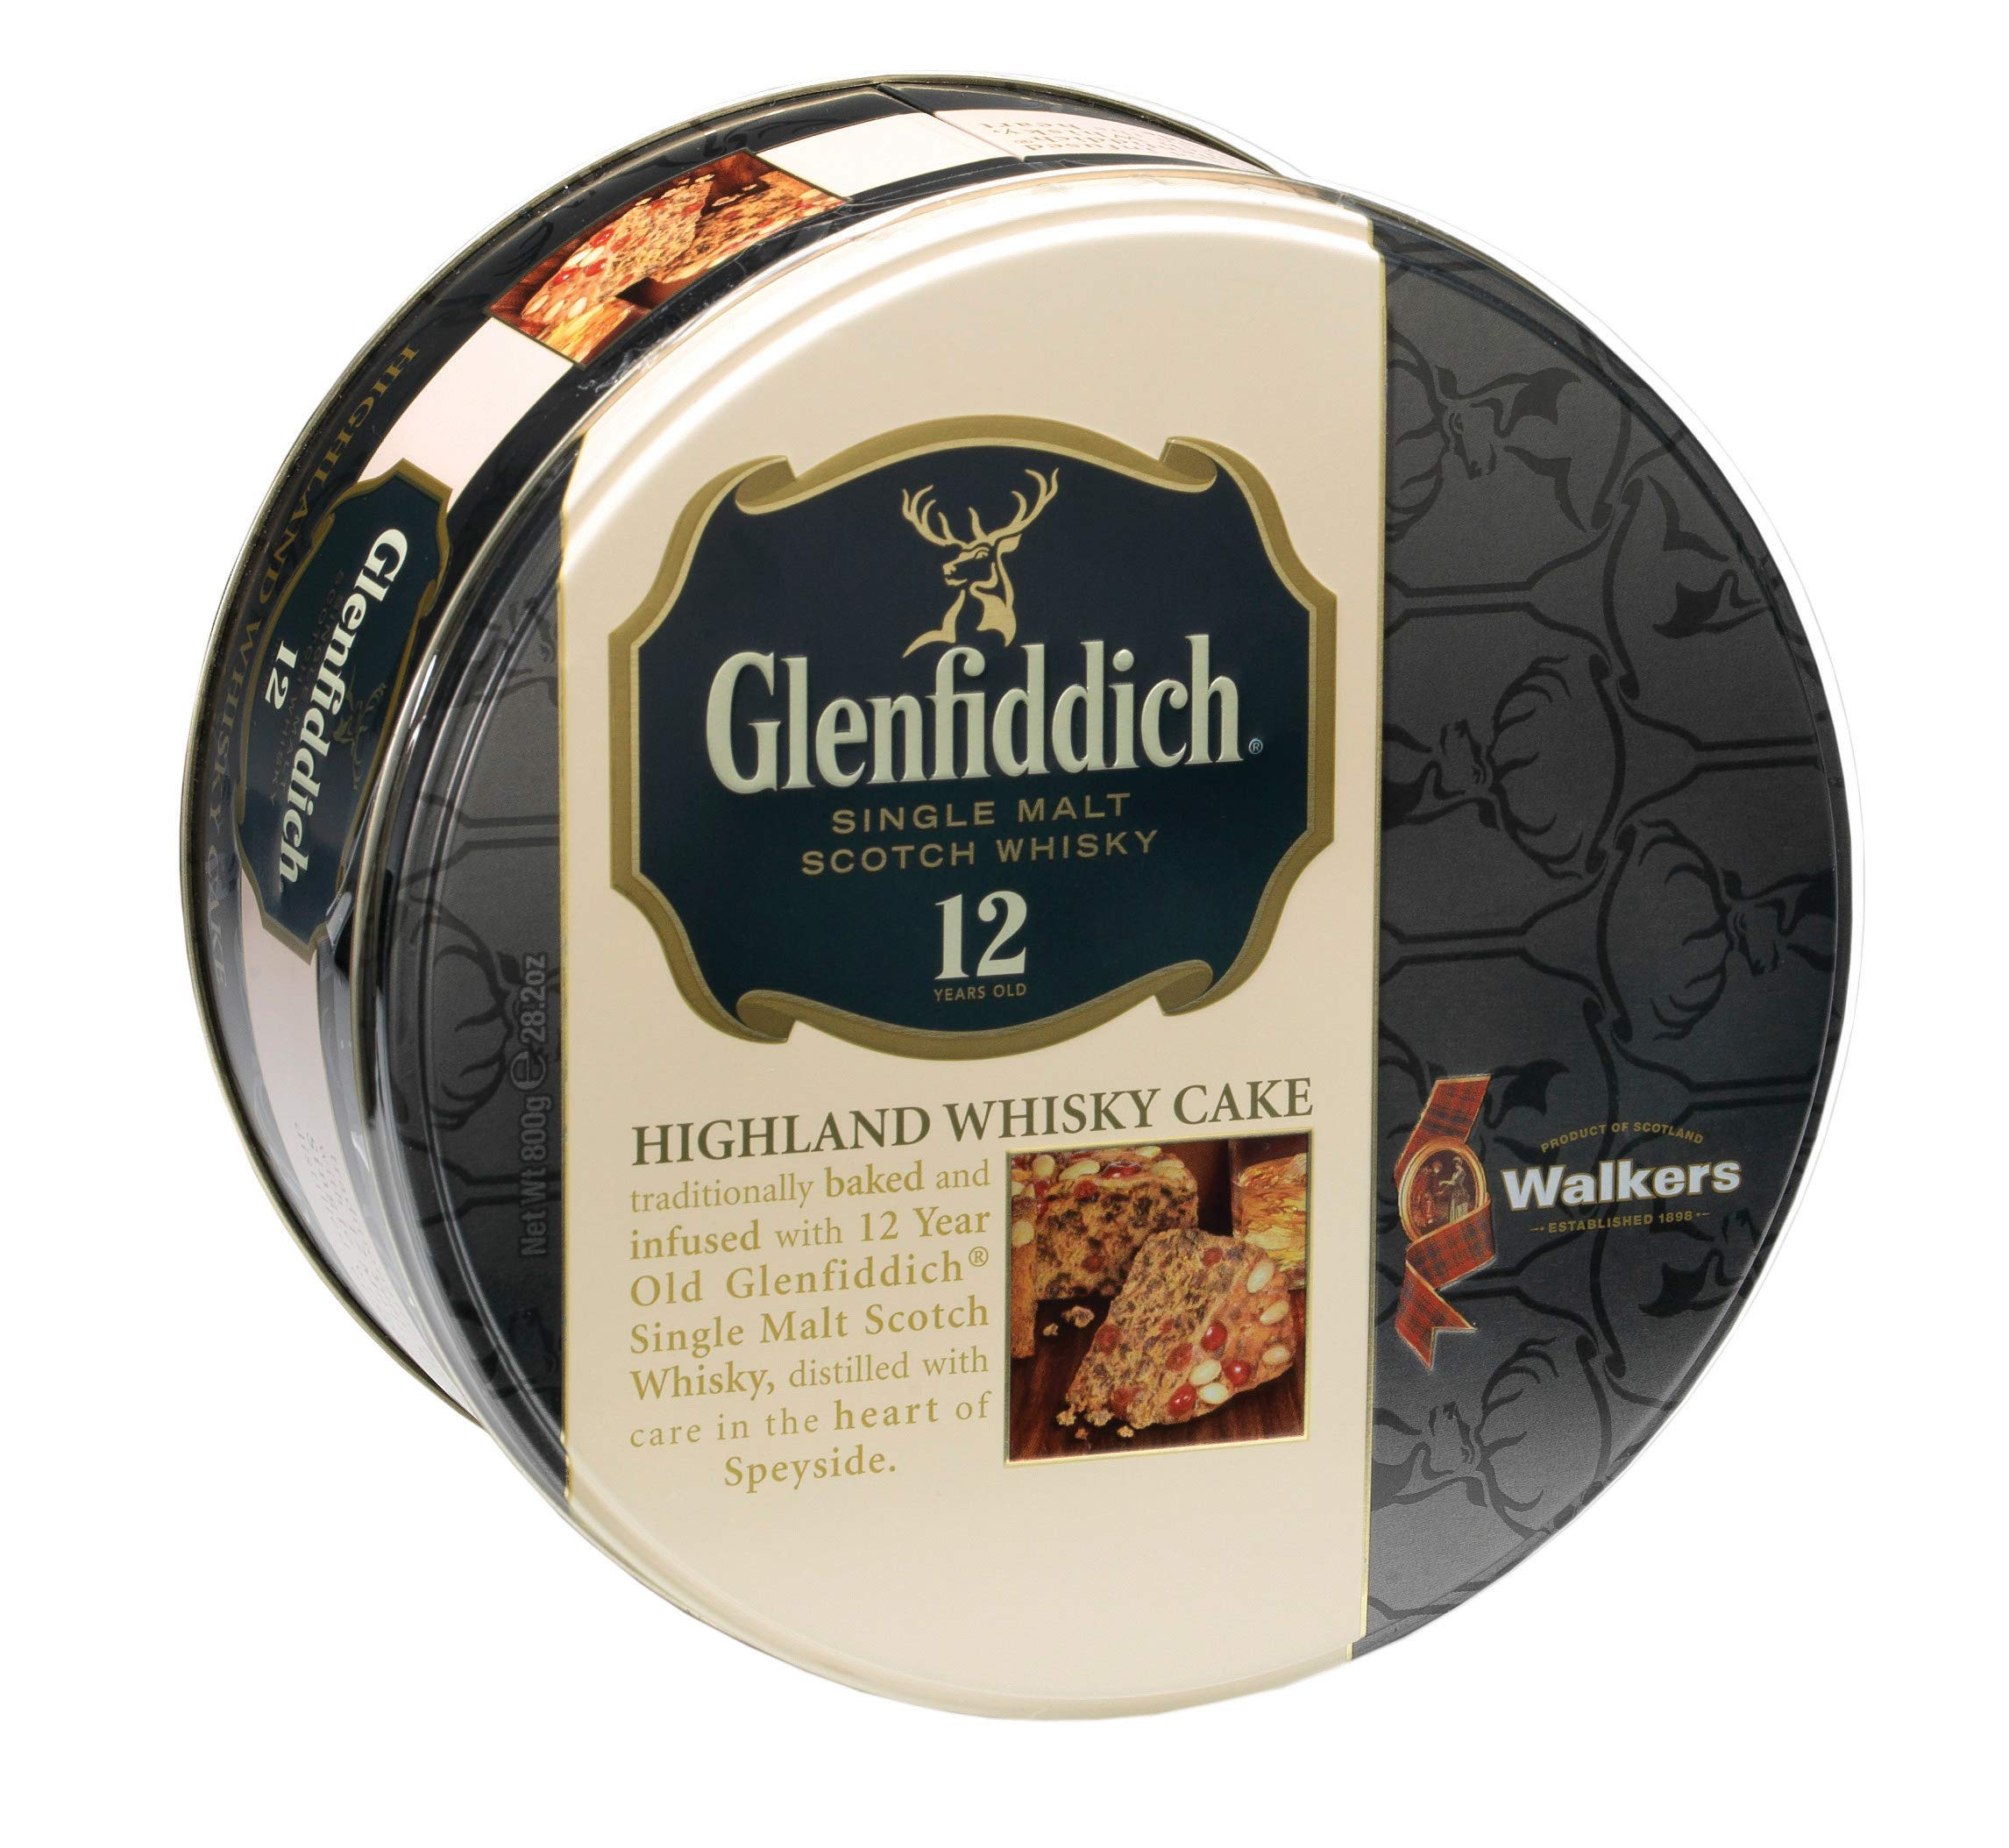 Walkers Shortbread Glenfiddich Highland Whisky Cake, 28.2 Ounce Tin Traditional Scottish Fruit Cake with Glenfiddich Malt Whisky, Cherries, Sultanas by Walkers Shortbread